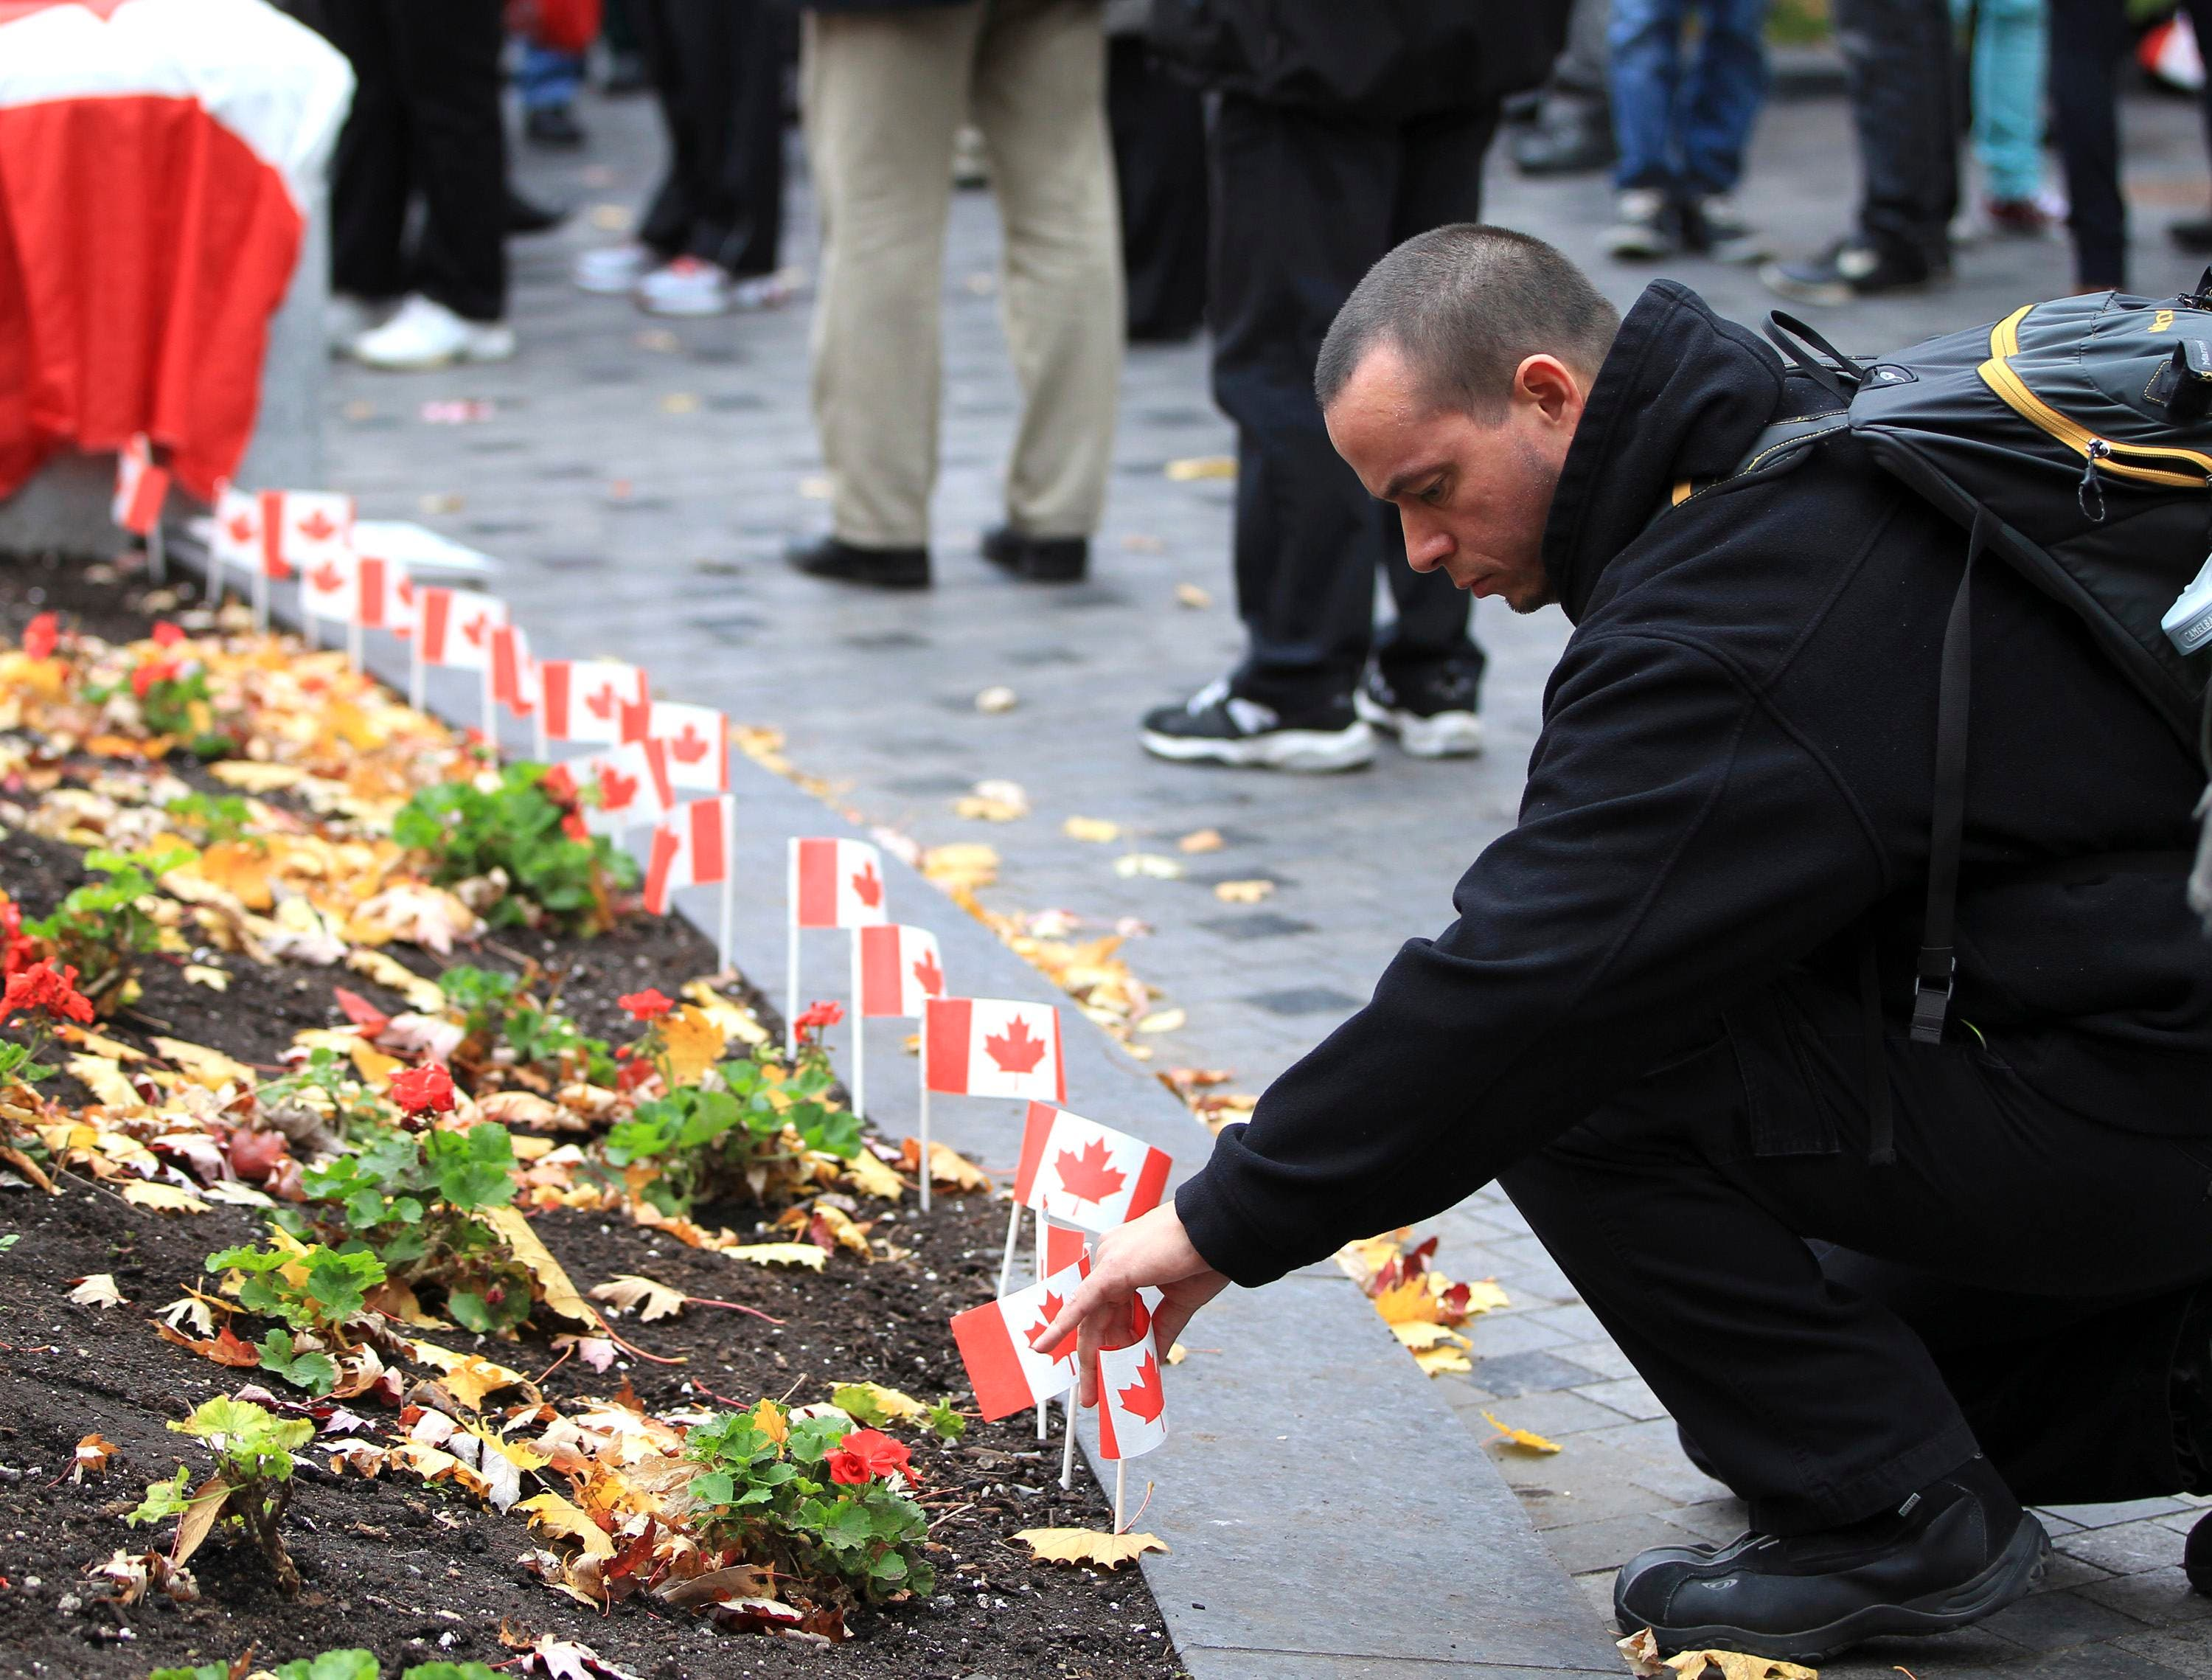 A man places a flag in memory of fallen Canadian soldiers, Warrant Officer Patrice Vincent and Corporal Nathan Cirillo, during a vigil in Montreal, October 25, 2014.